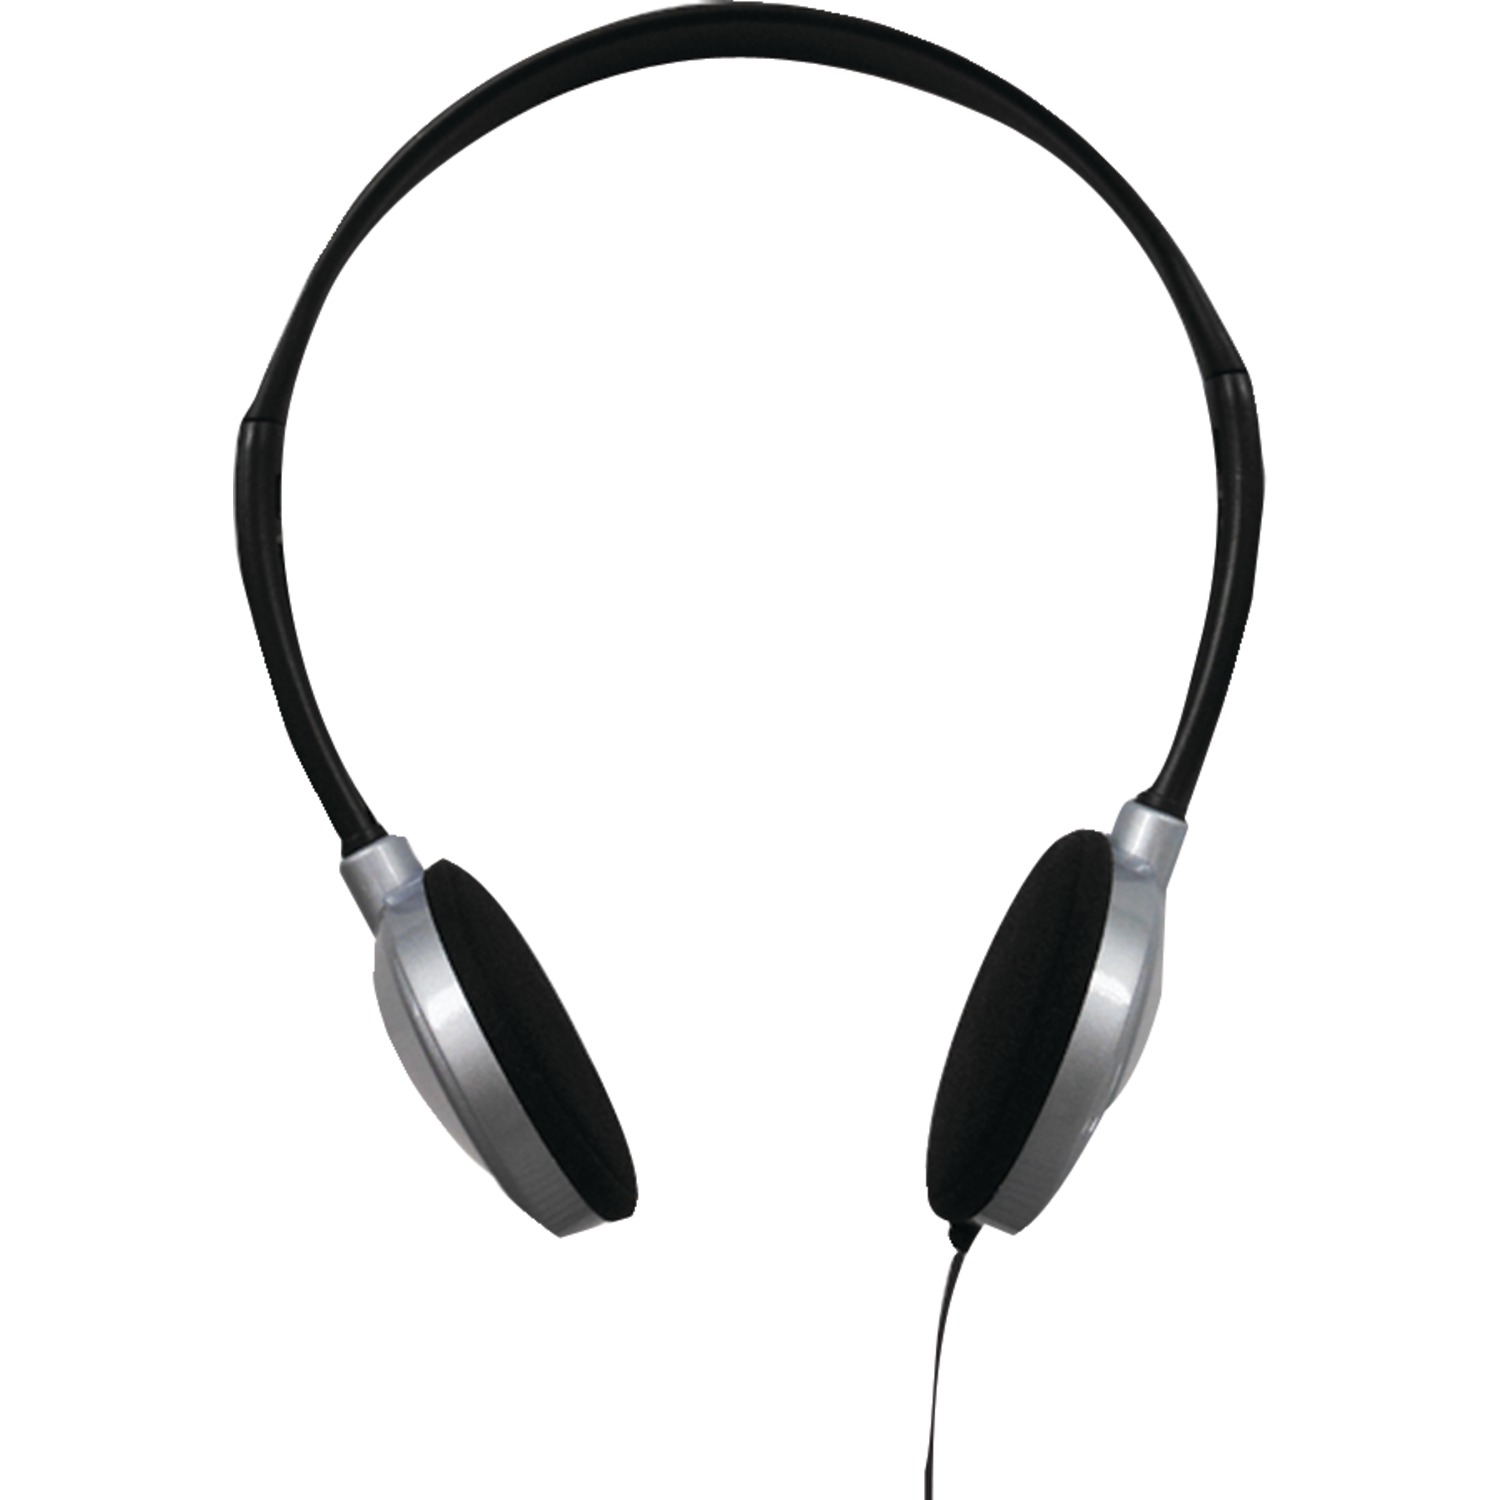 Maxell 190318 Lightweight Stereo Headphones by Maxell